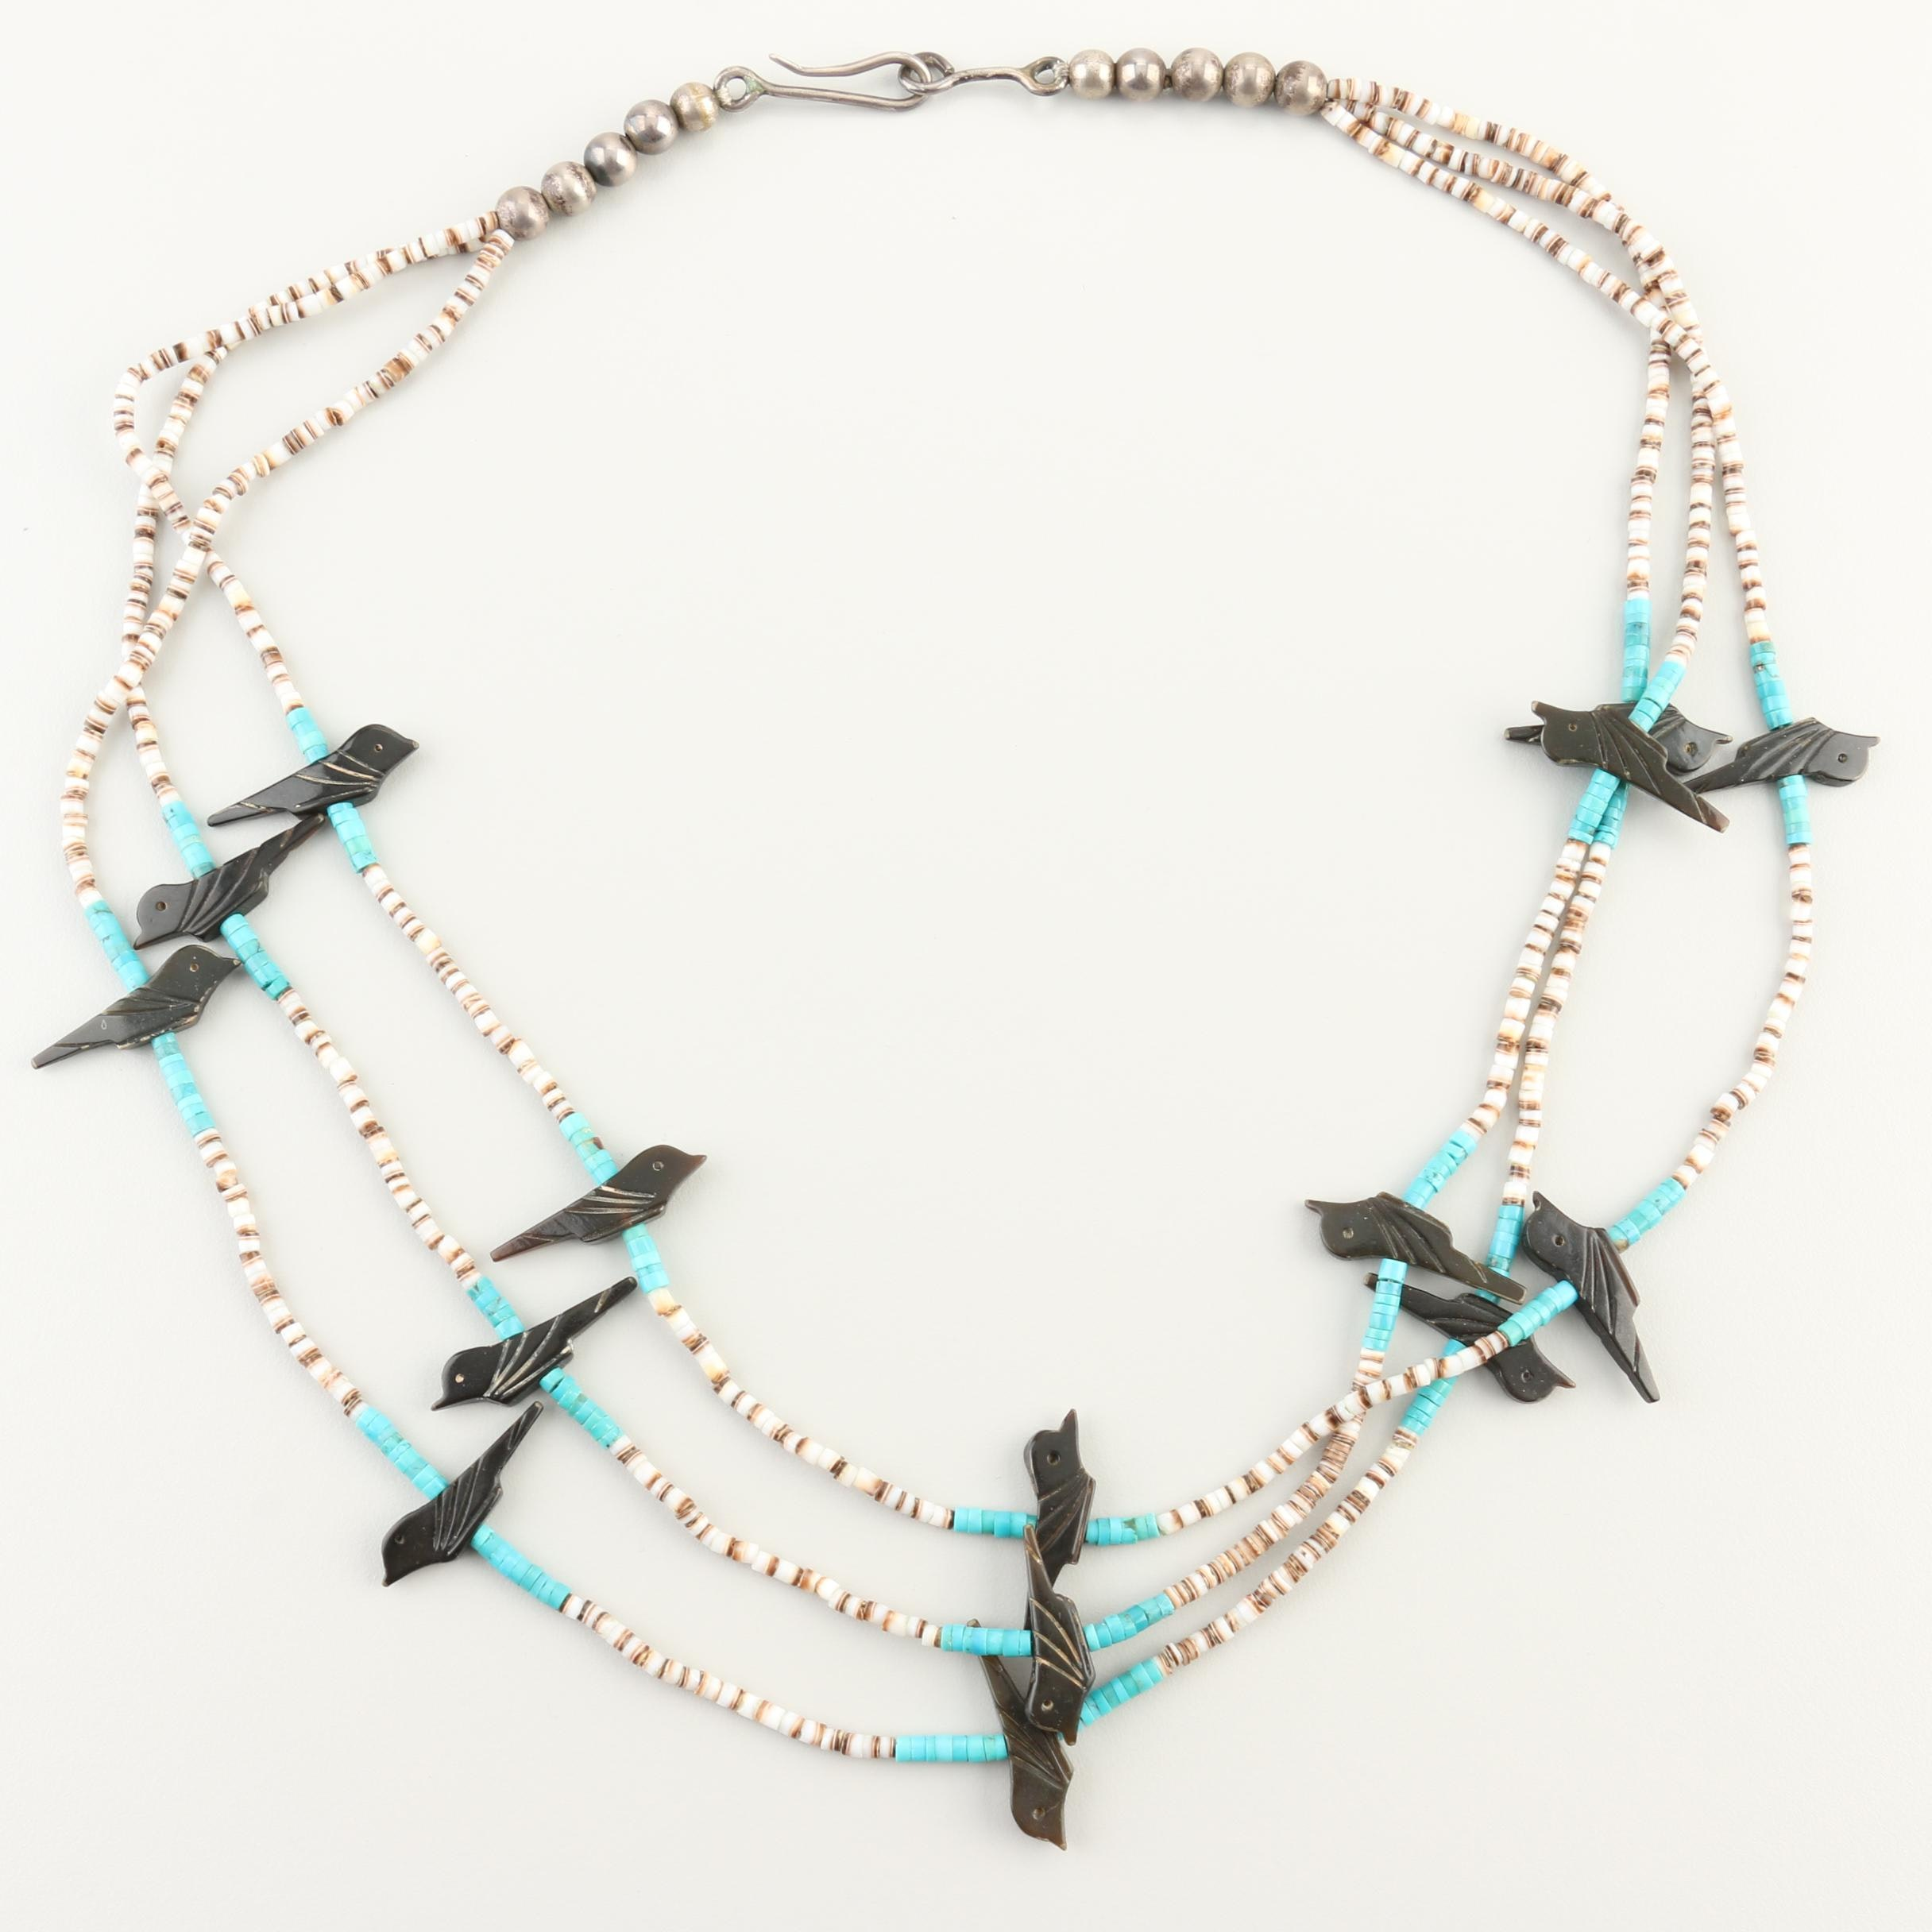 Southwestern Style Sterling Silver Horn, Turquoise, and Shell Fetish Necklace